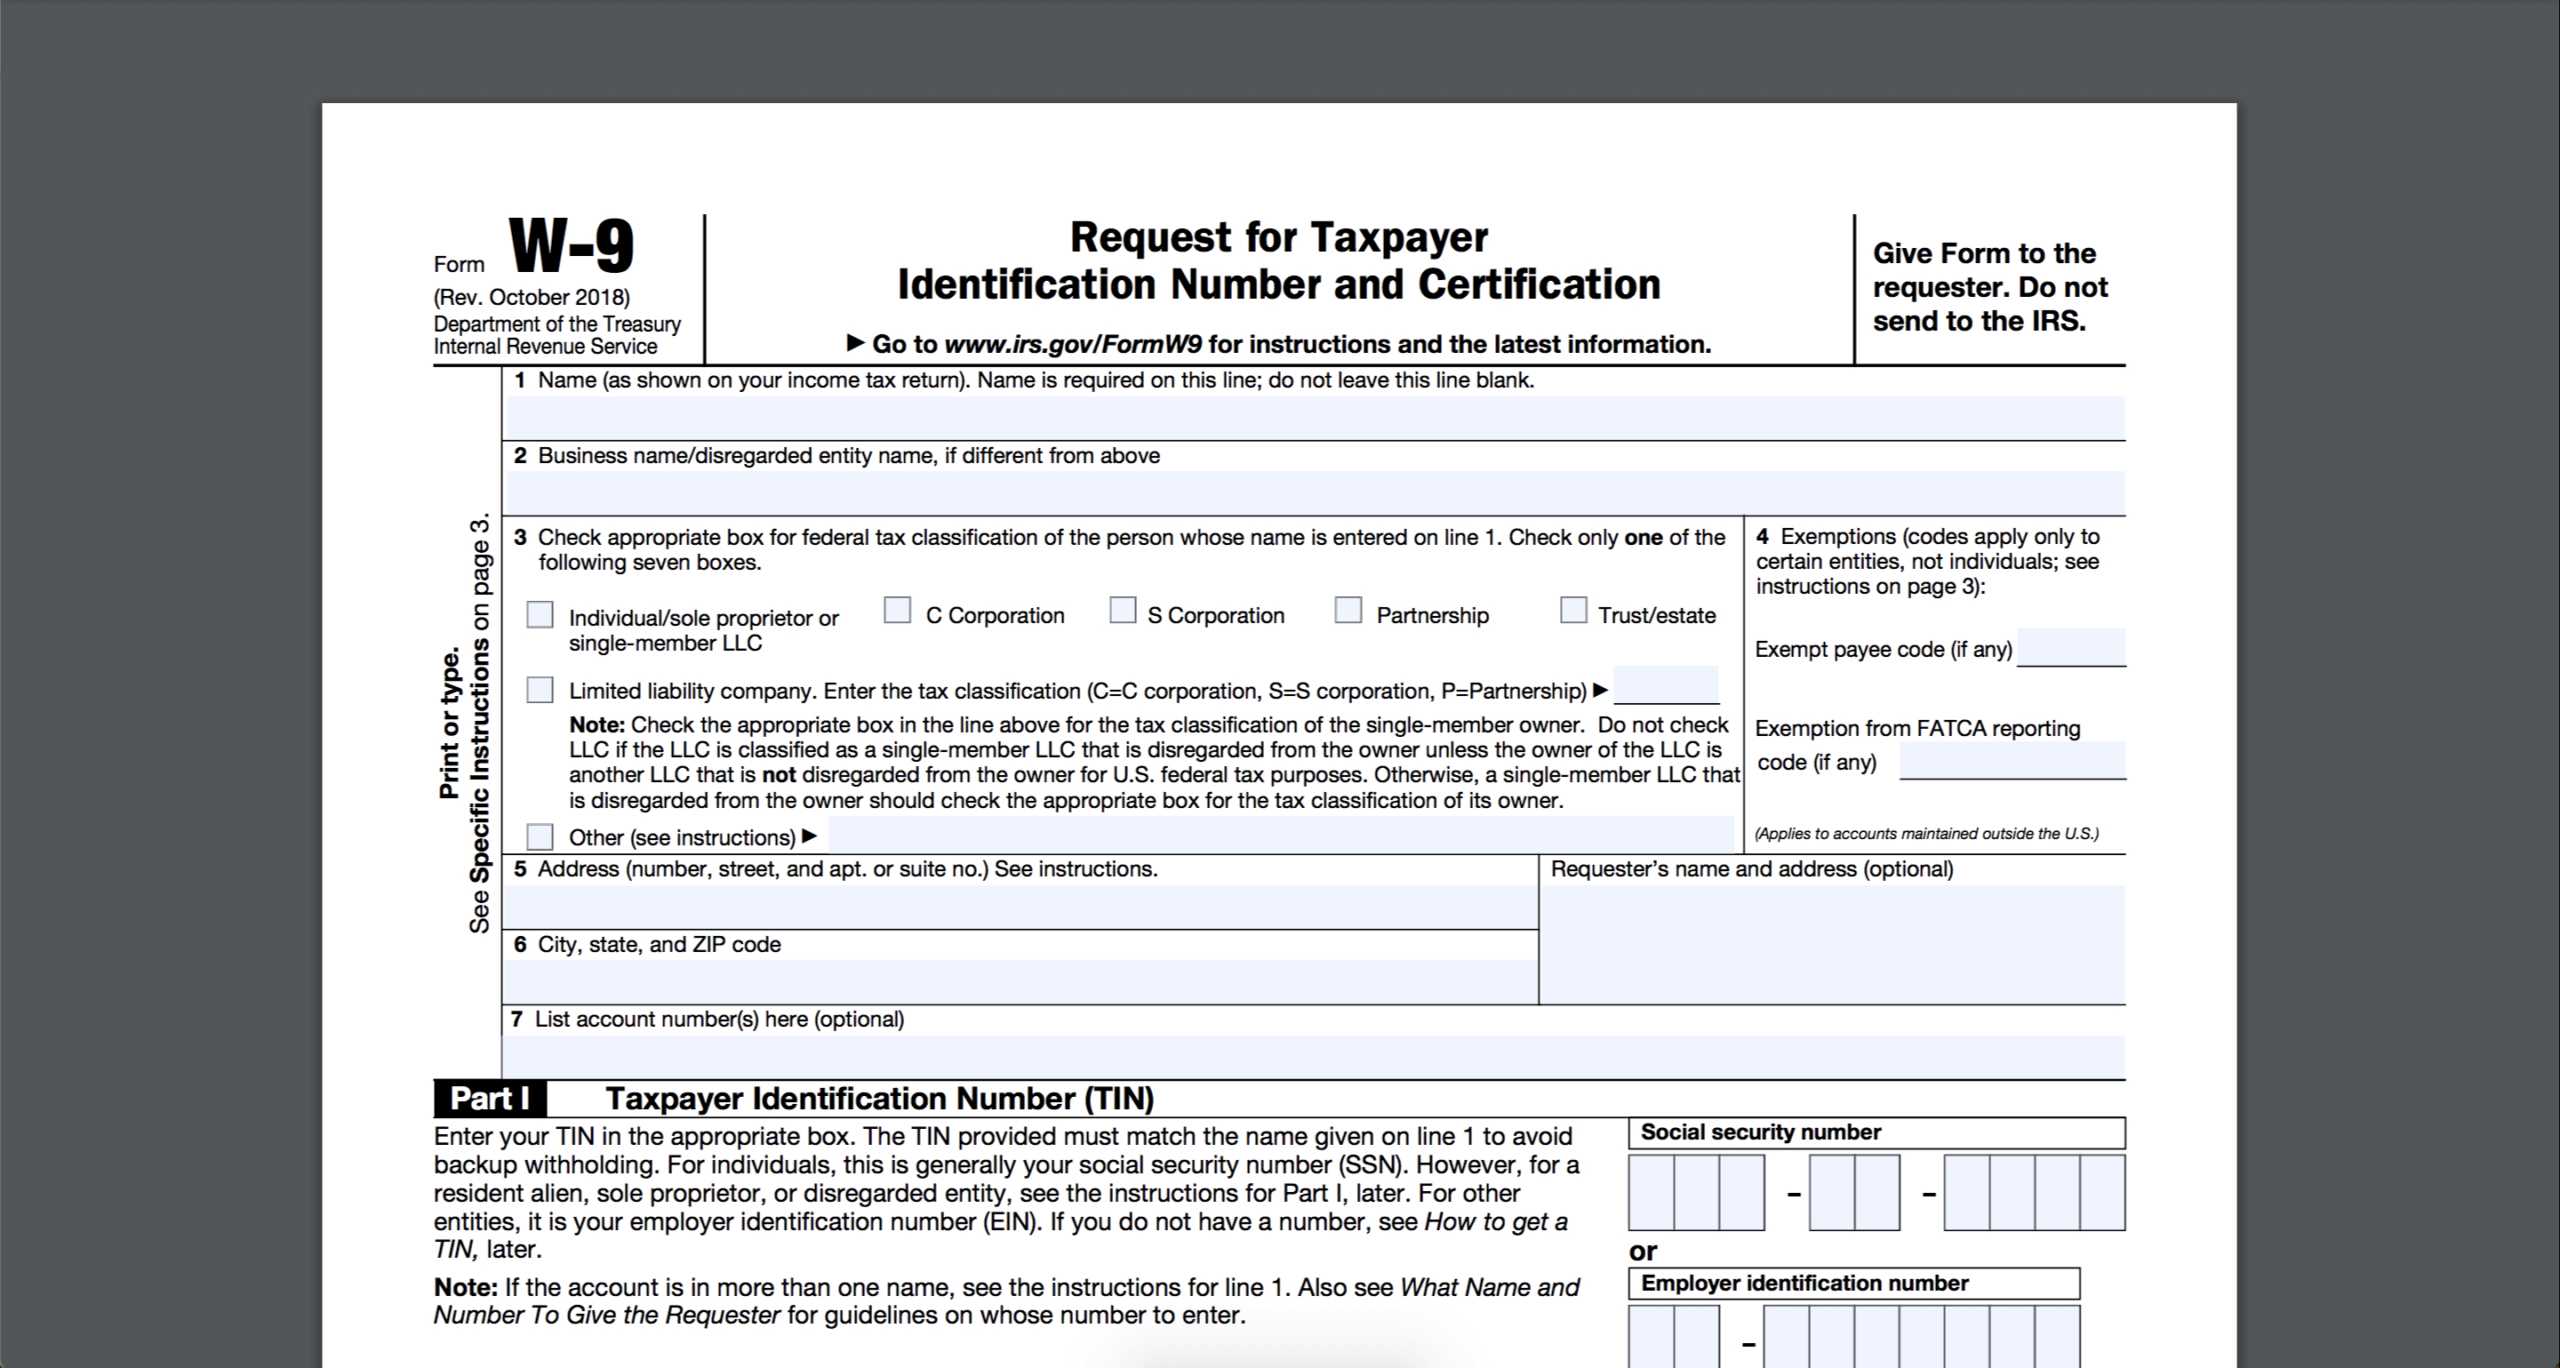 How To Fill Out And Sign Your W-9 Form Online inside Irs Printable W 9 Form